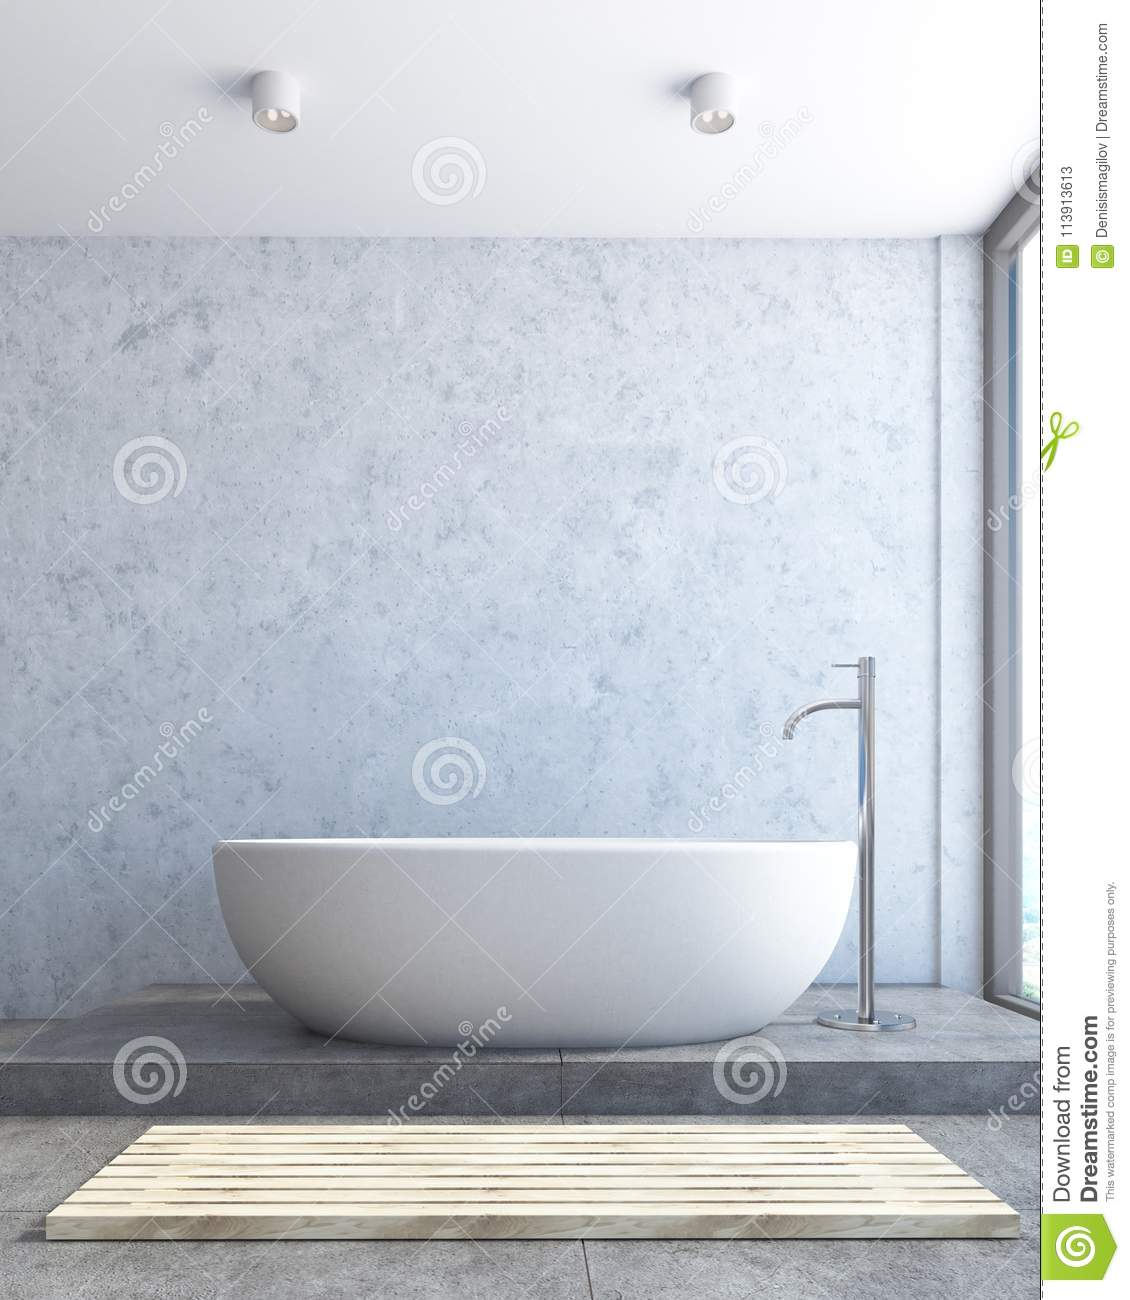 Close Up Of A White Bathtub, Concrete Bathroom Stock Illustration ...